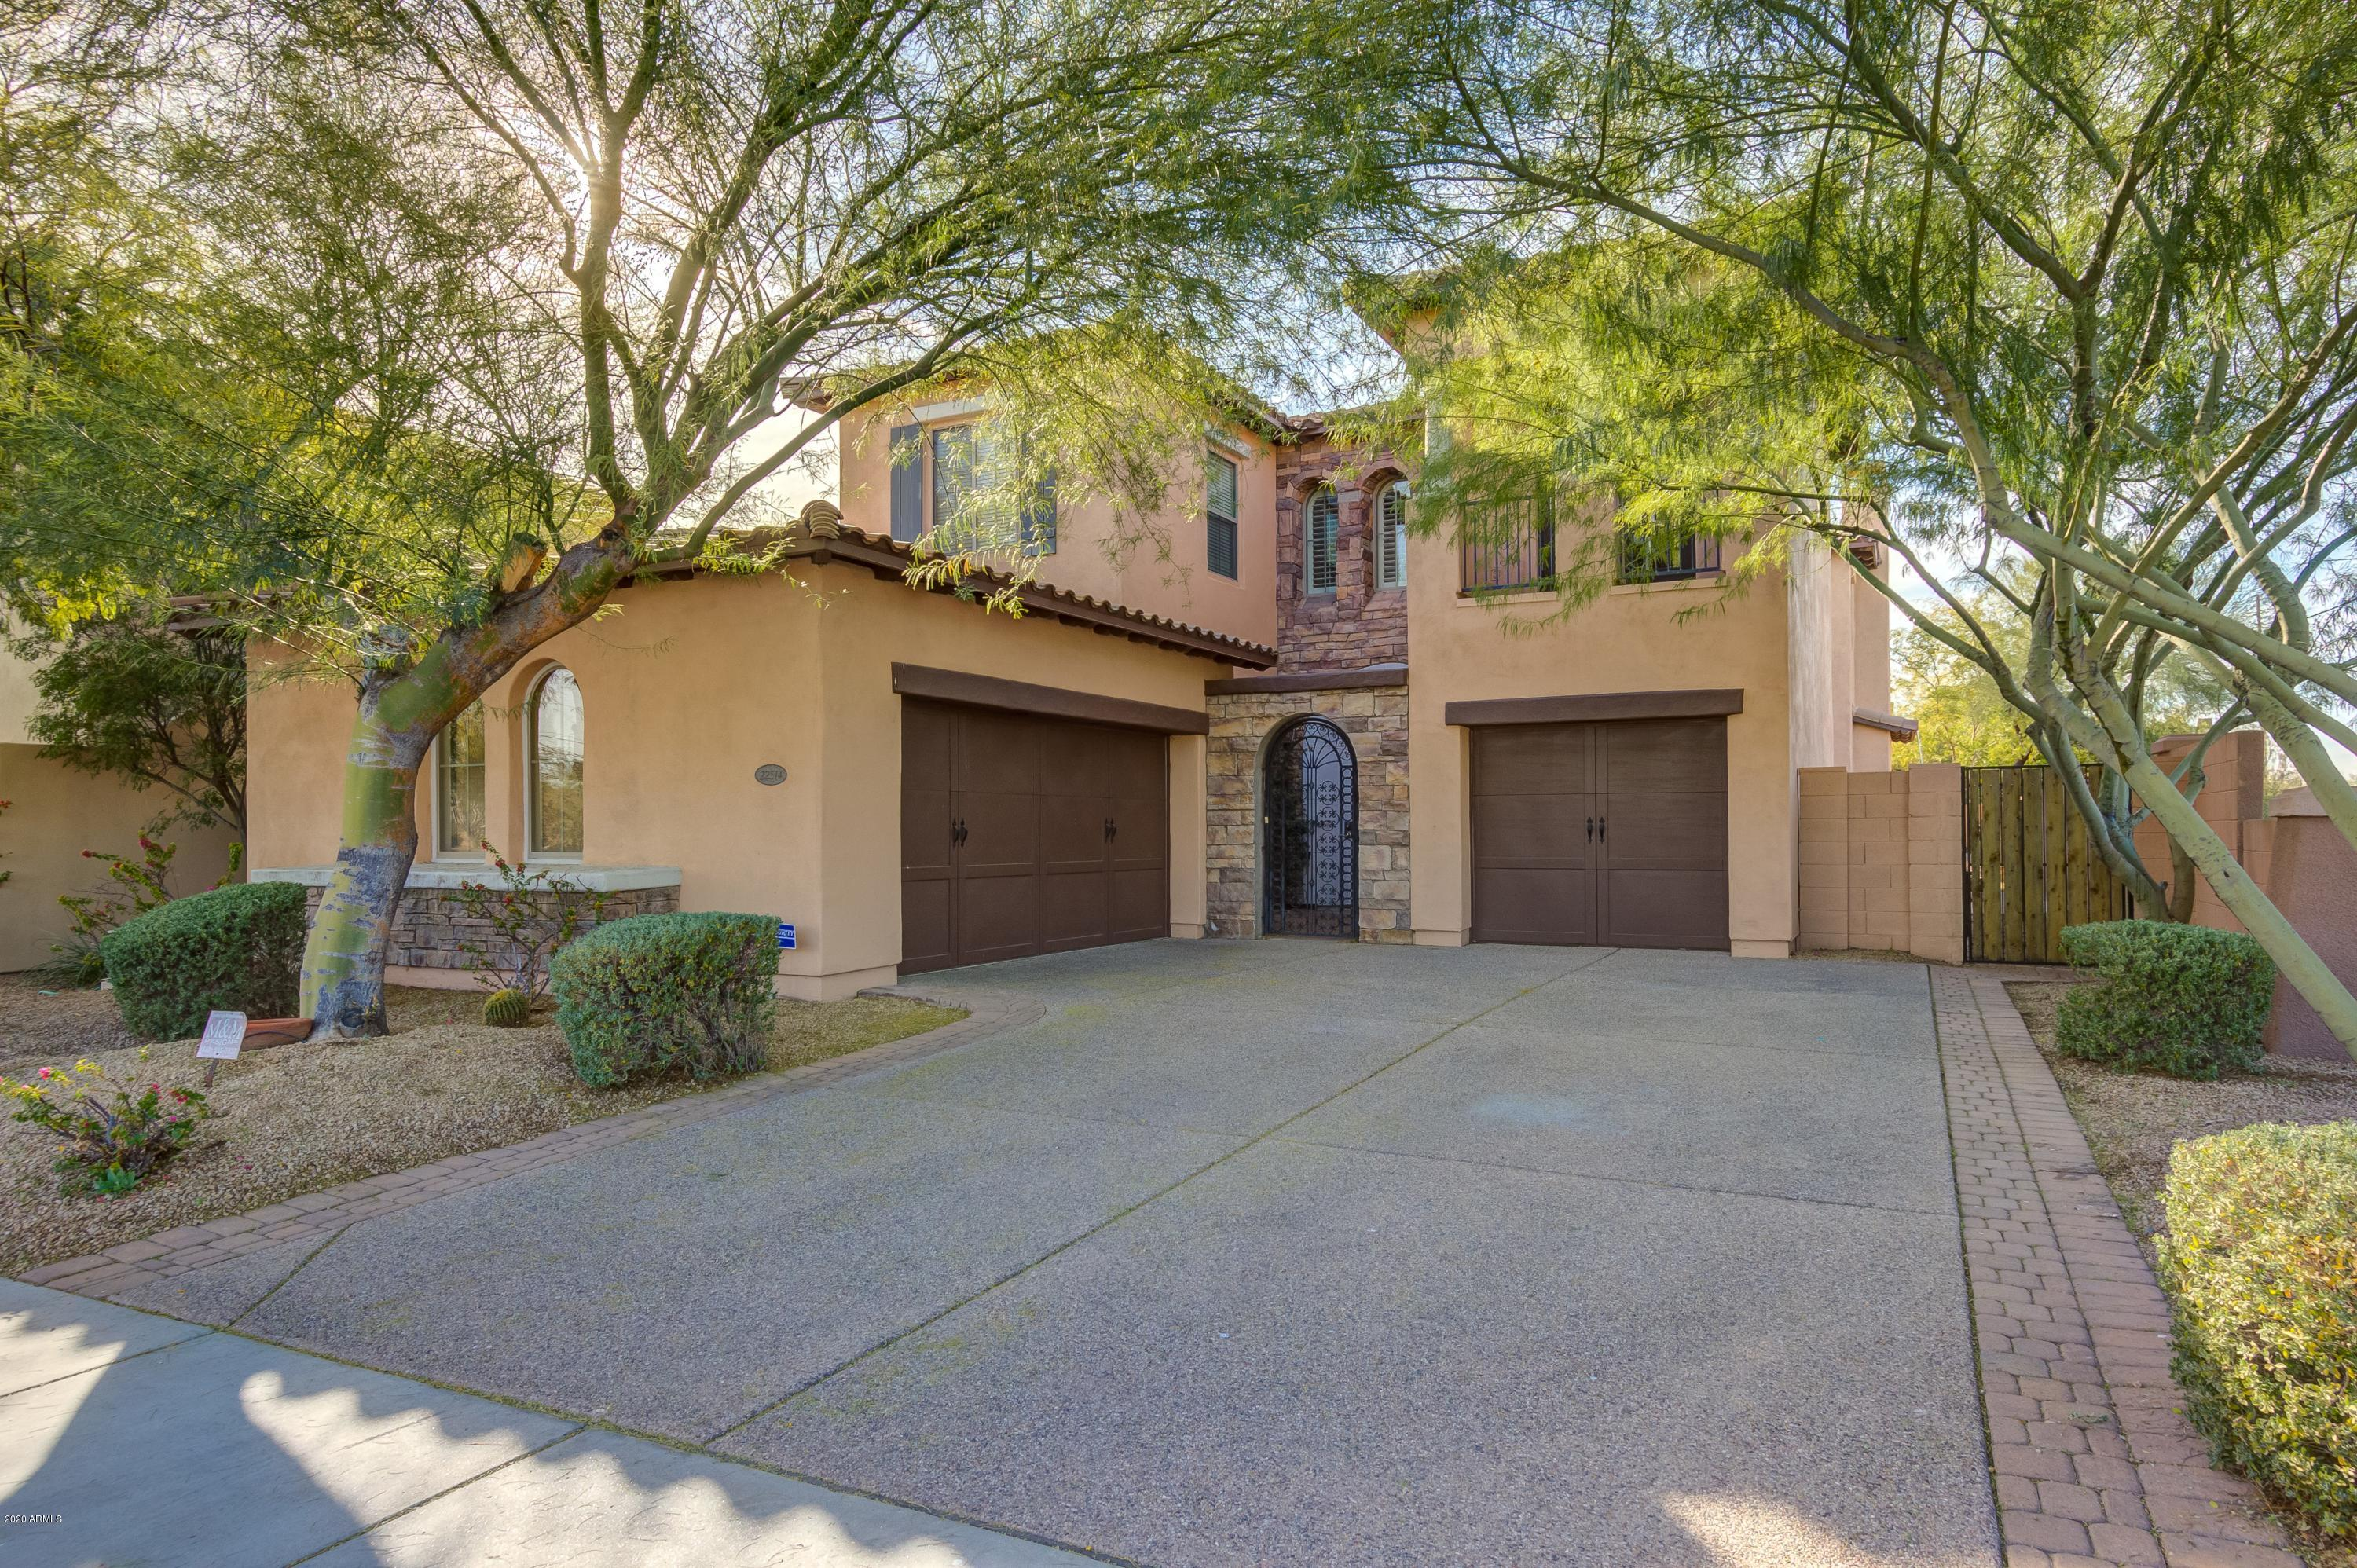 Photo of 22514 N 37TH Run, Phoenix, AZ 85050